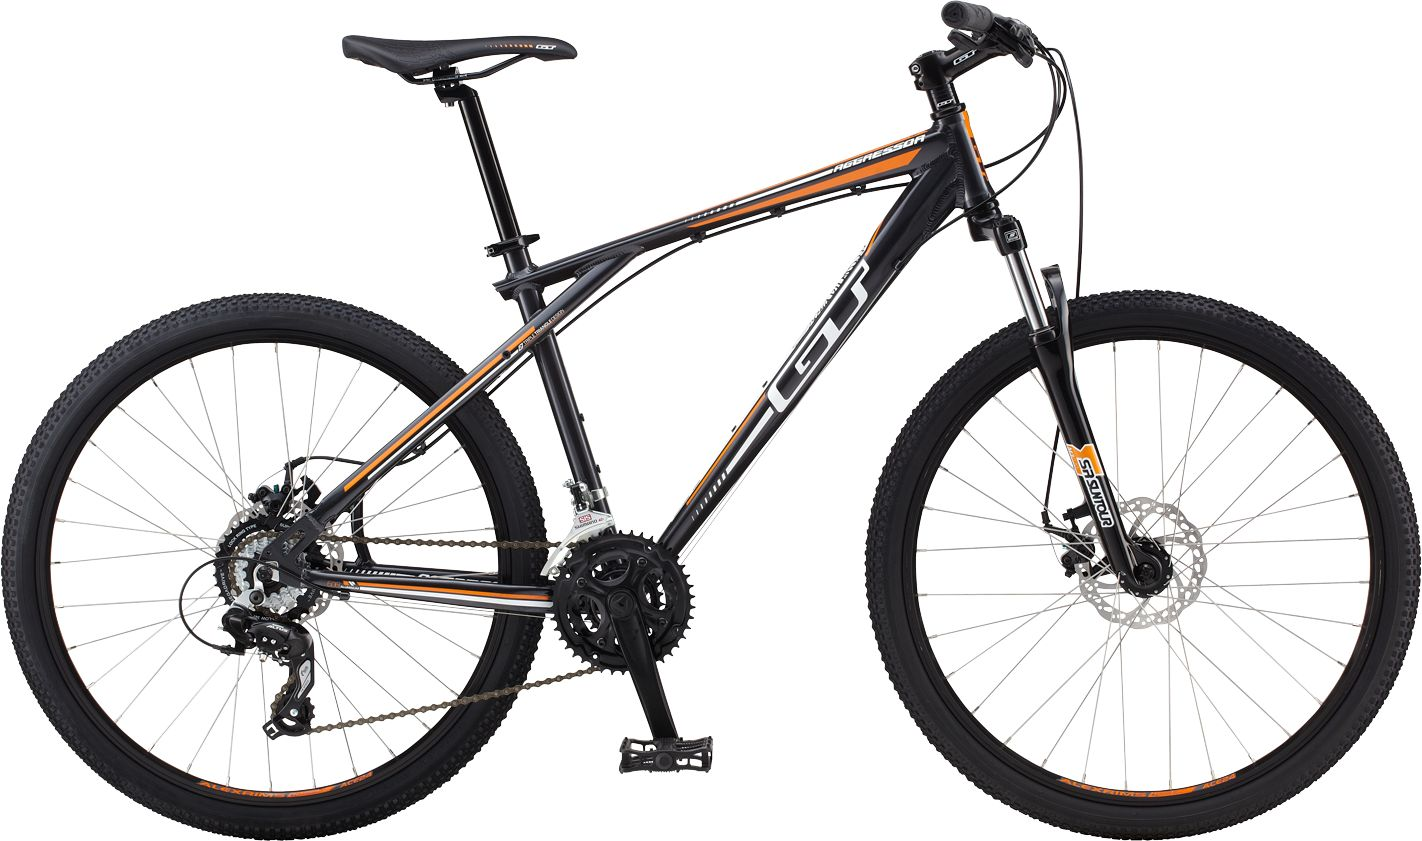 Gt Aggressor 2 0 2014 Review The Bike List